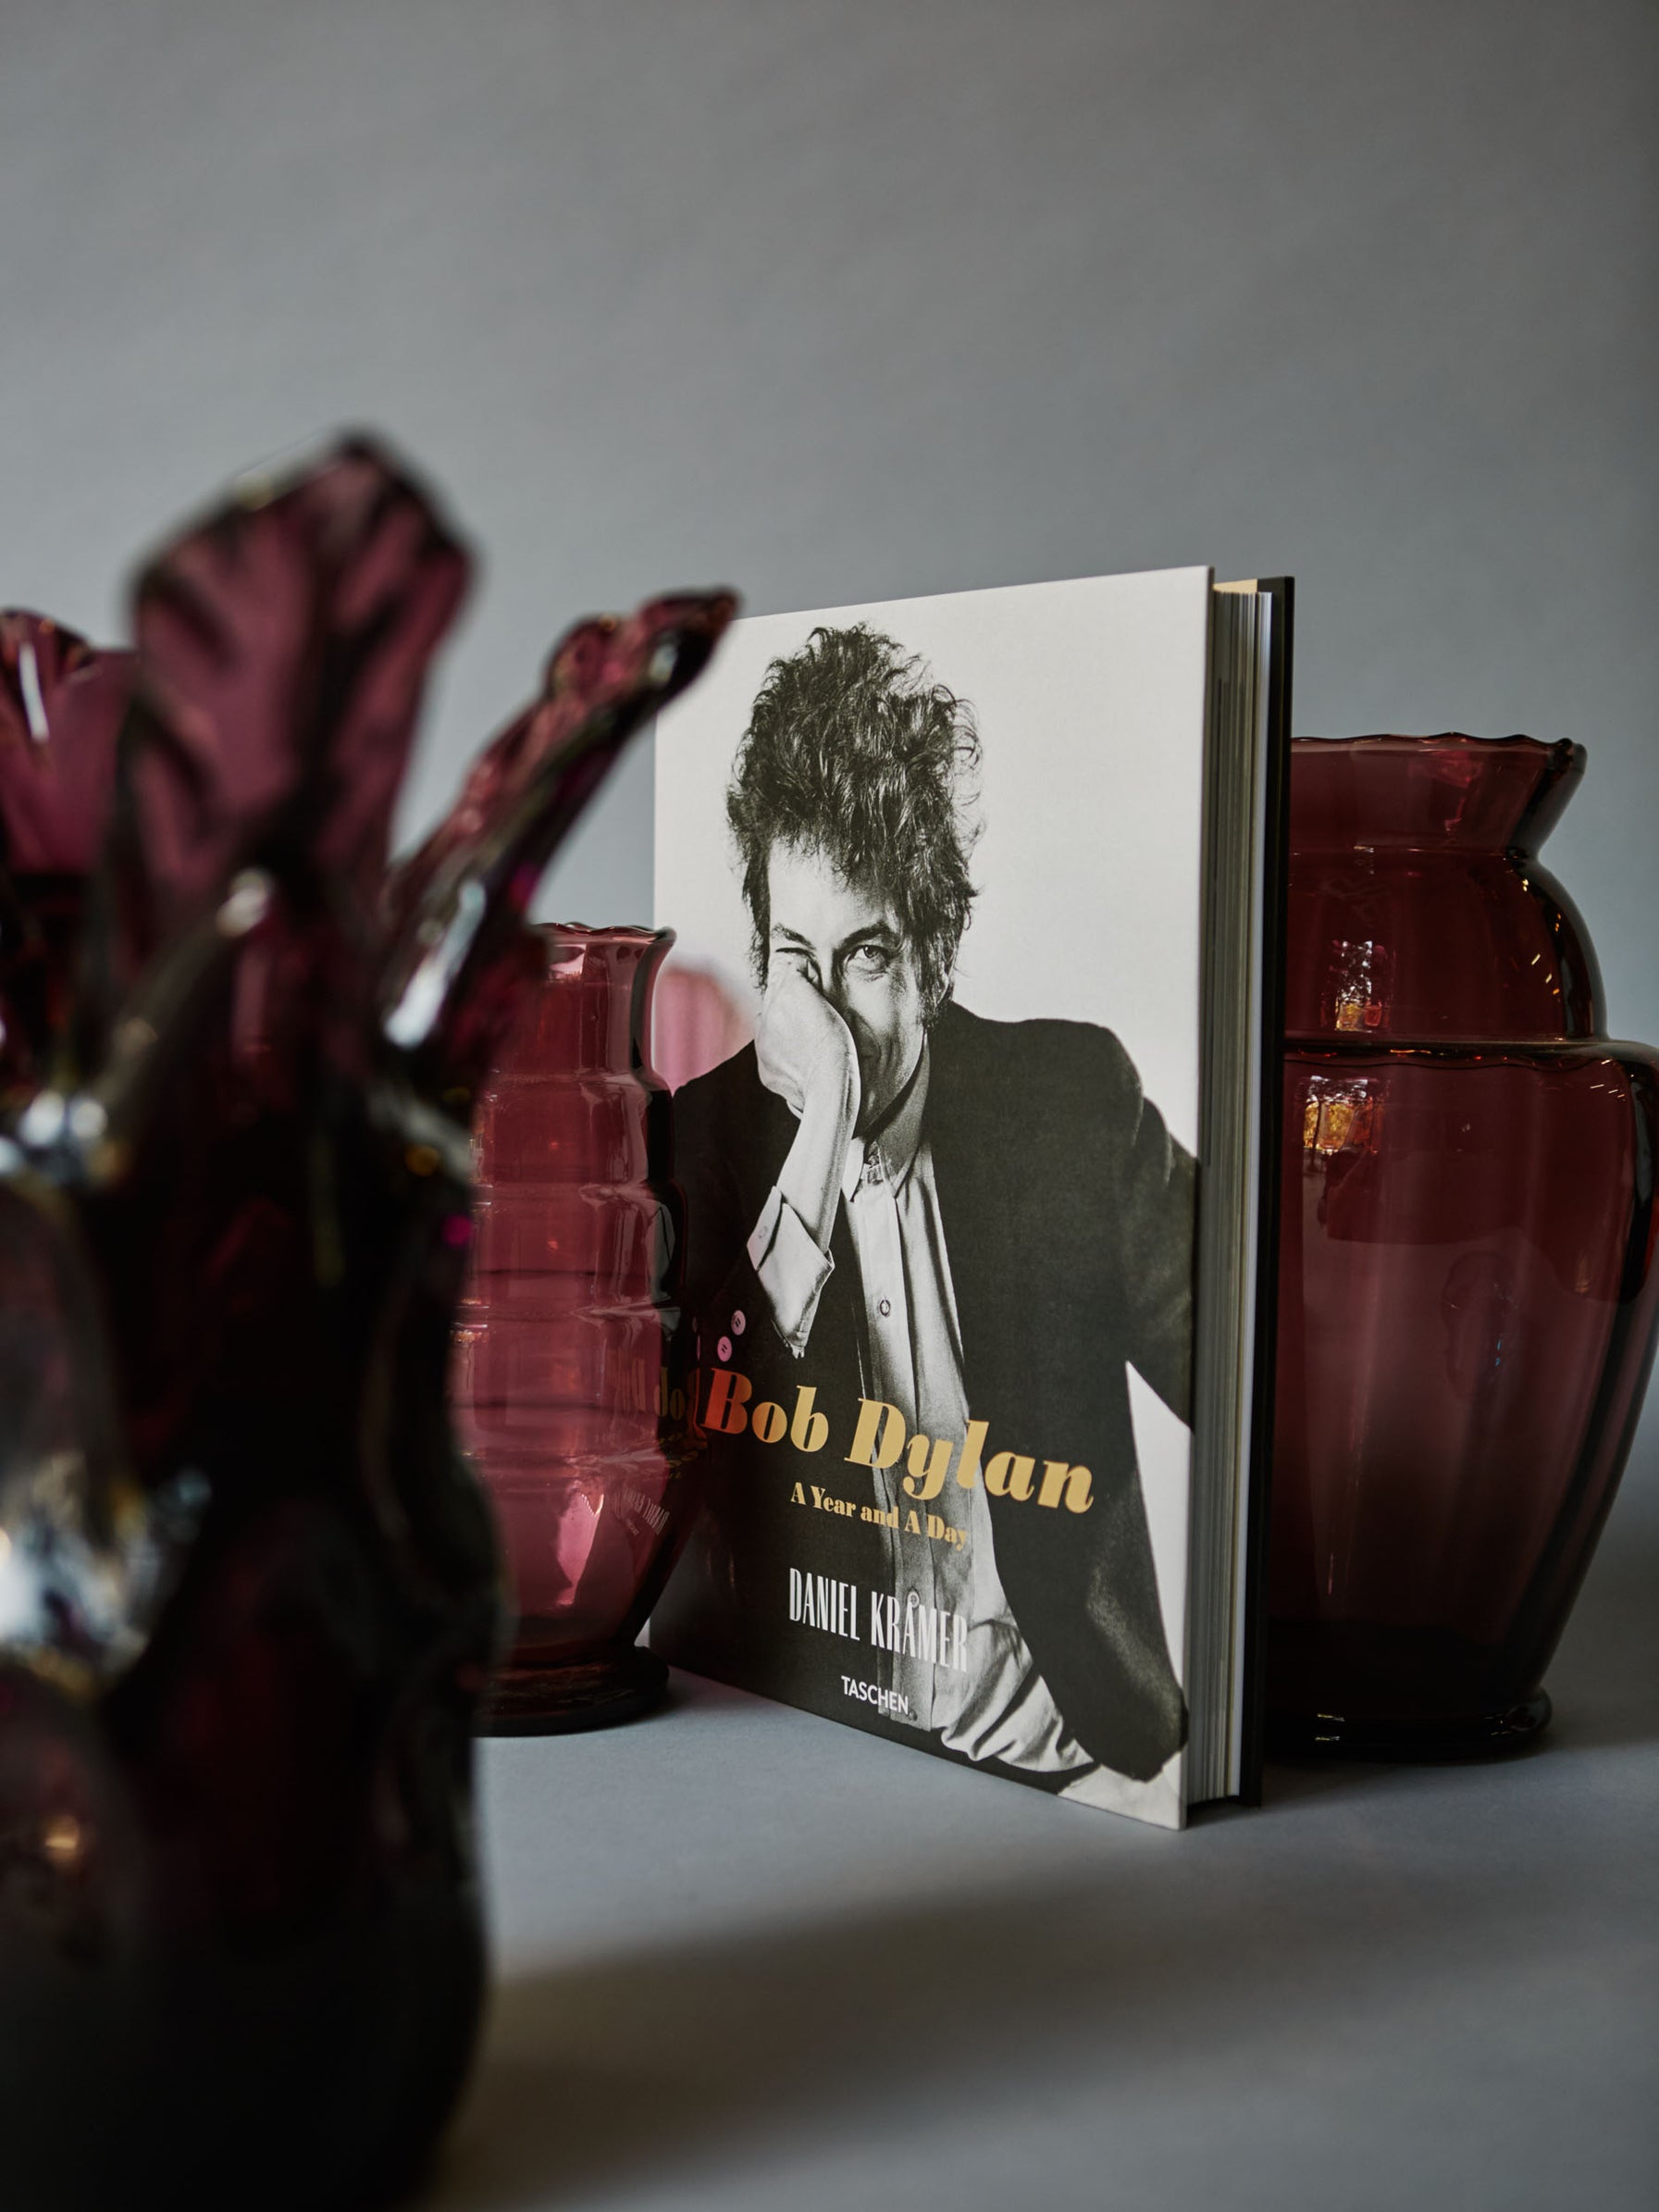 Bob Dylan: A Year and A Day Taschen